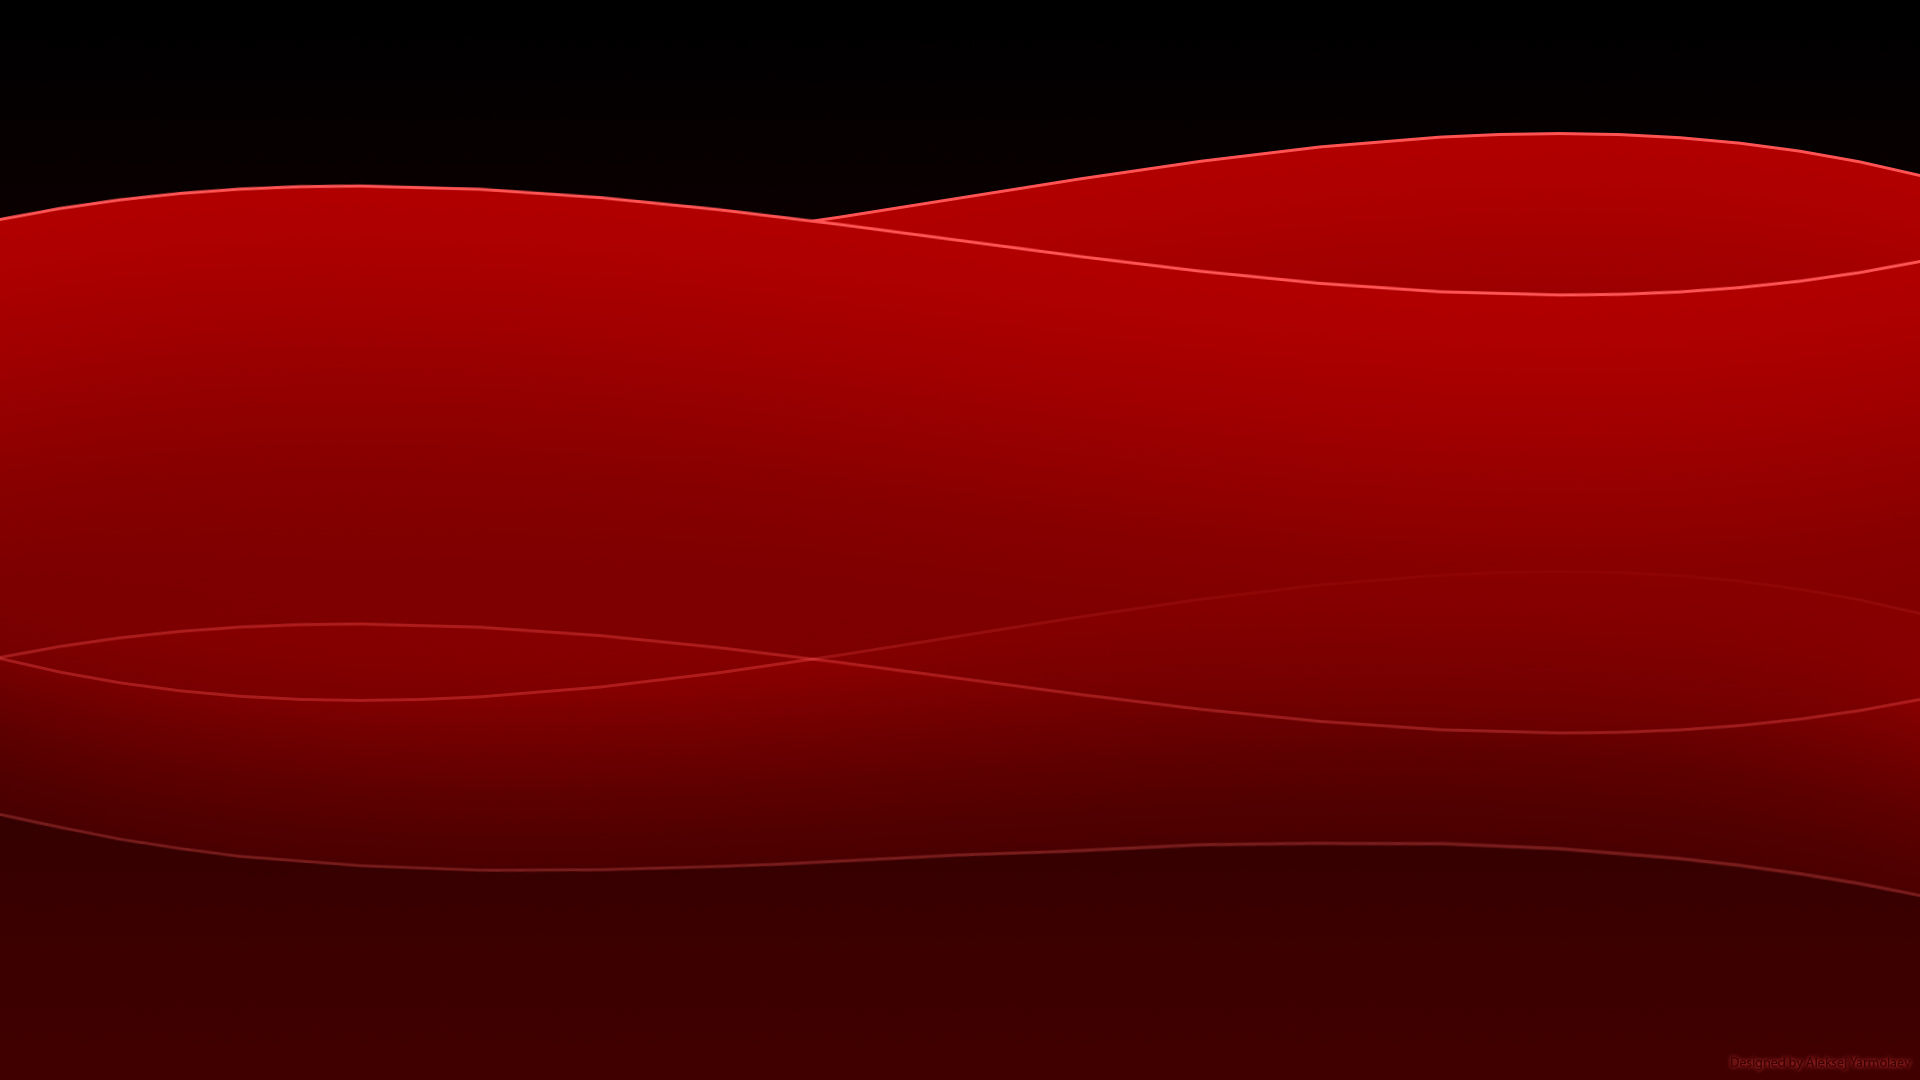 Red Wallpaper 014